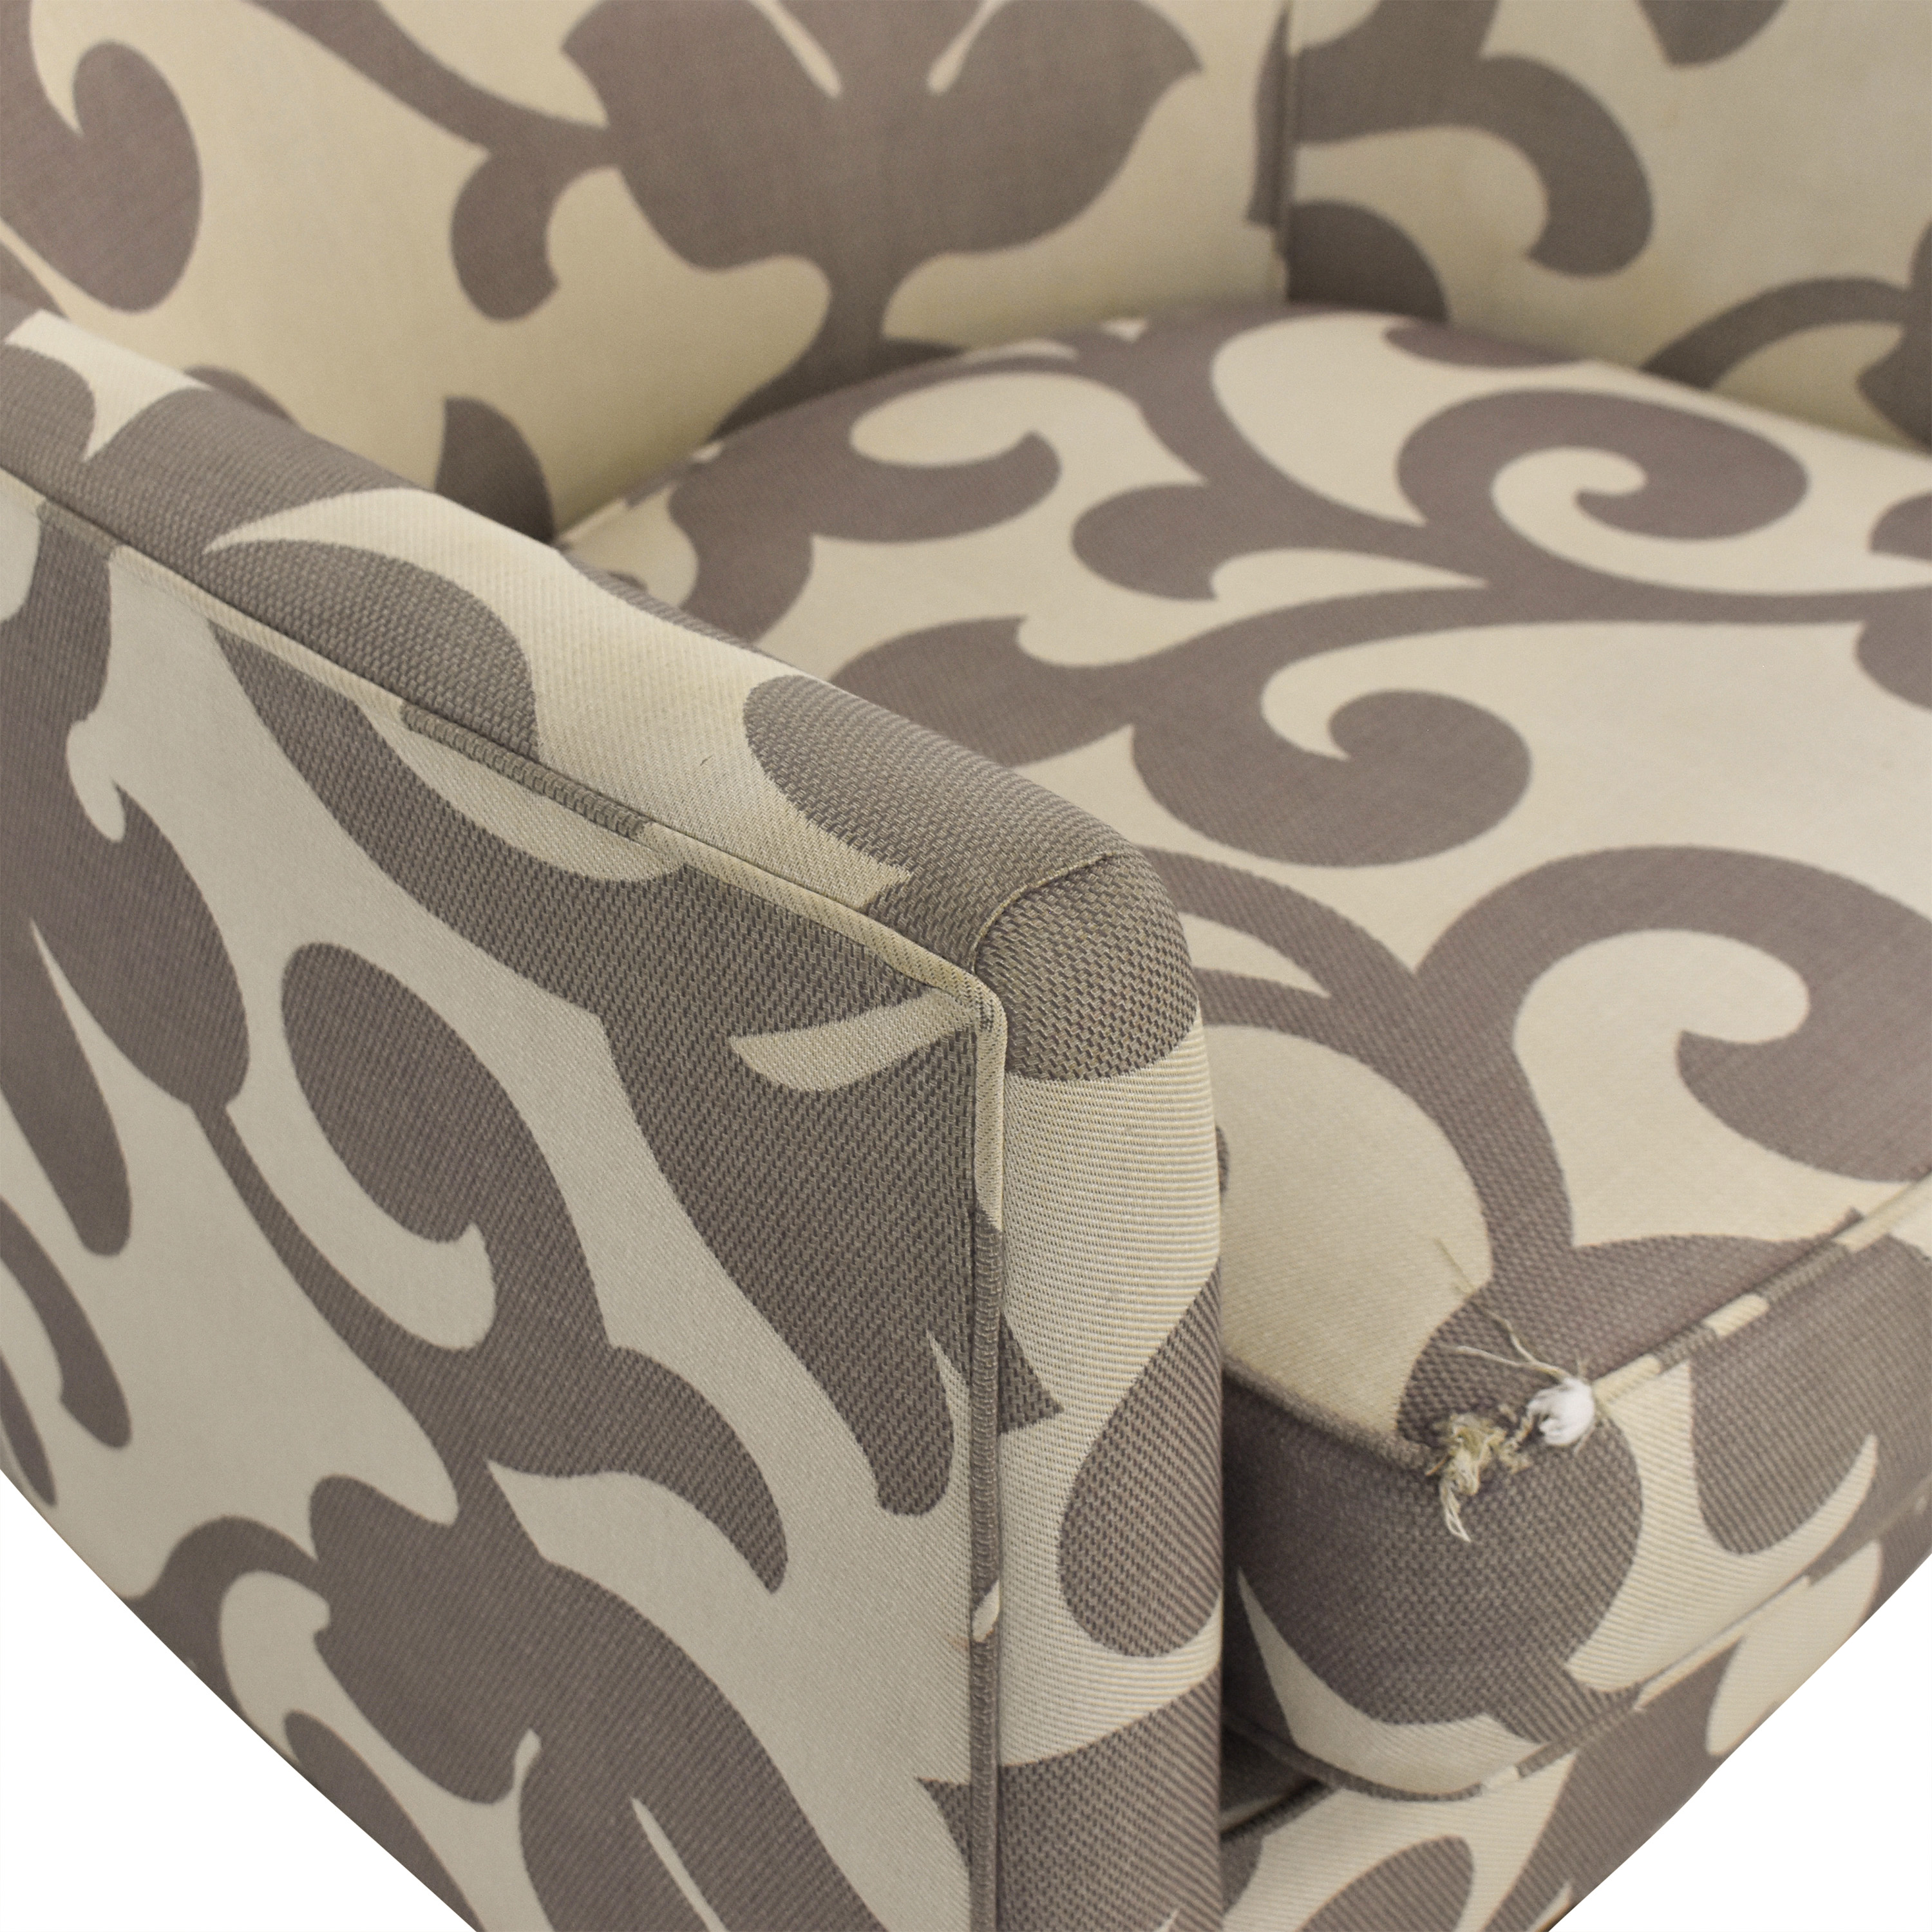 Crate & Barrel Accent Chair / Accent Chairs